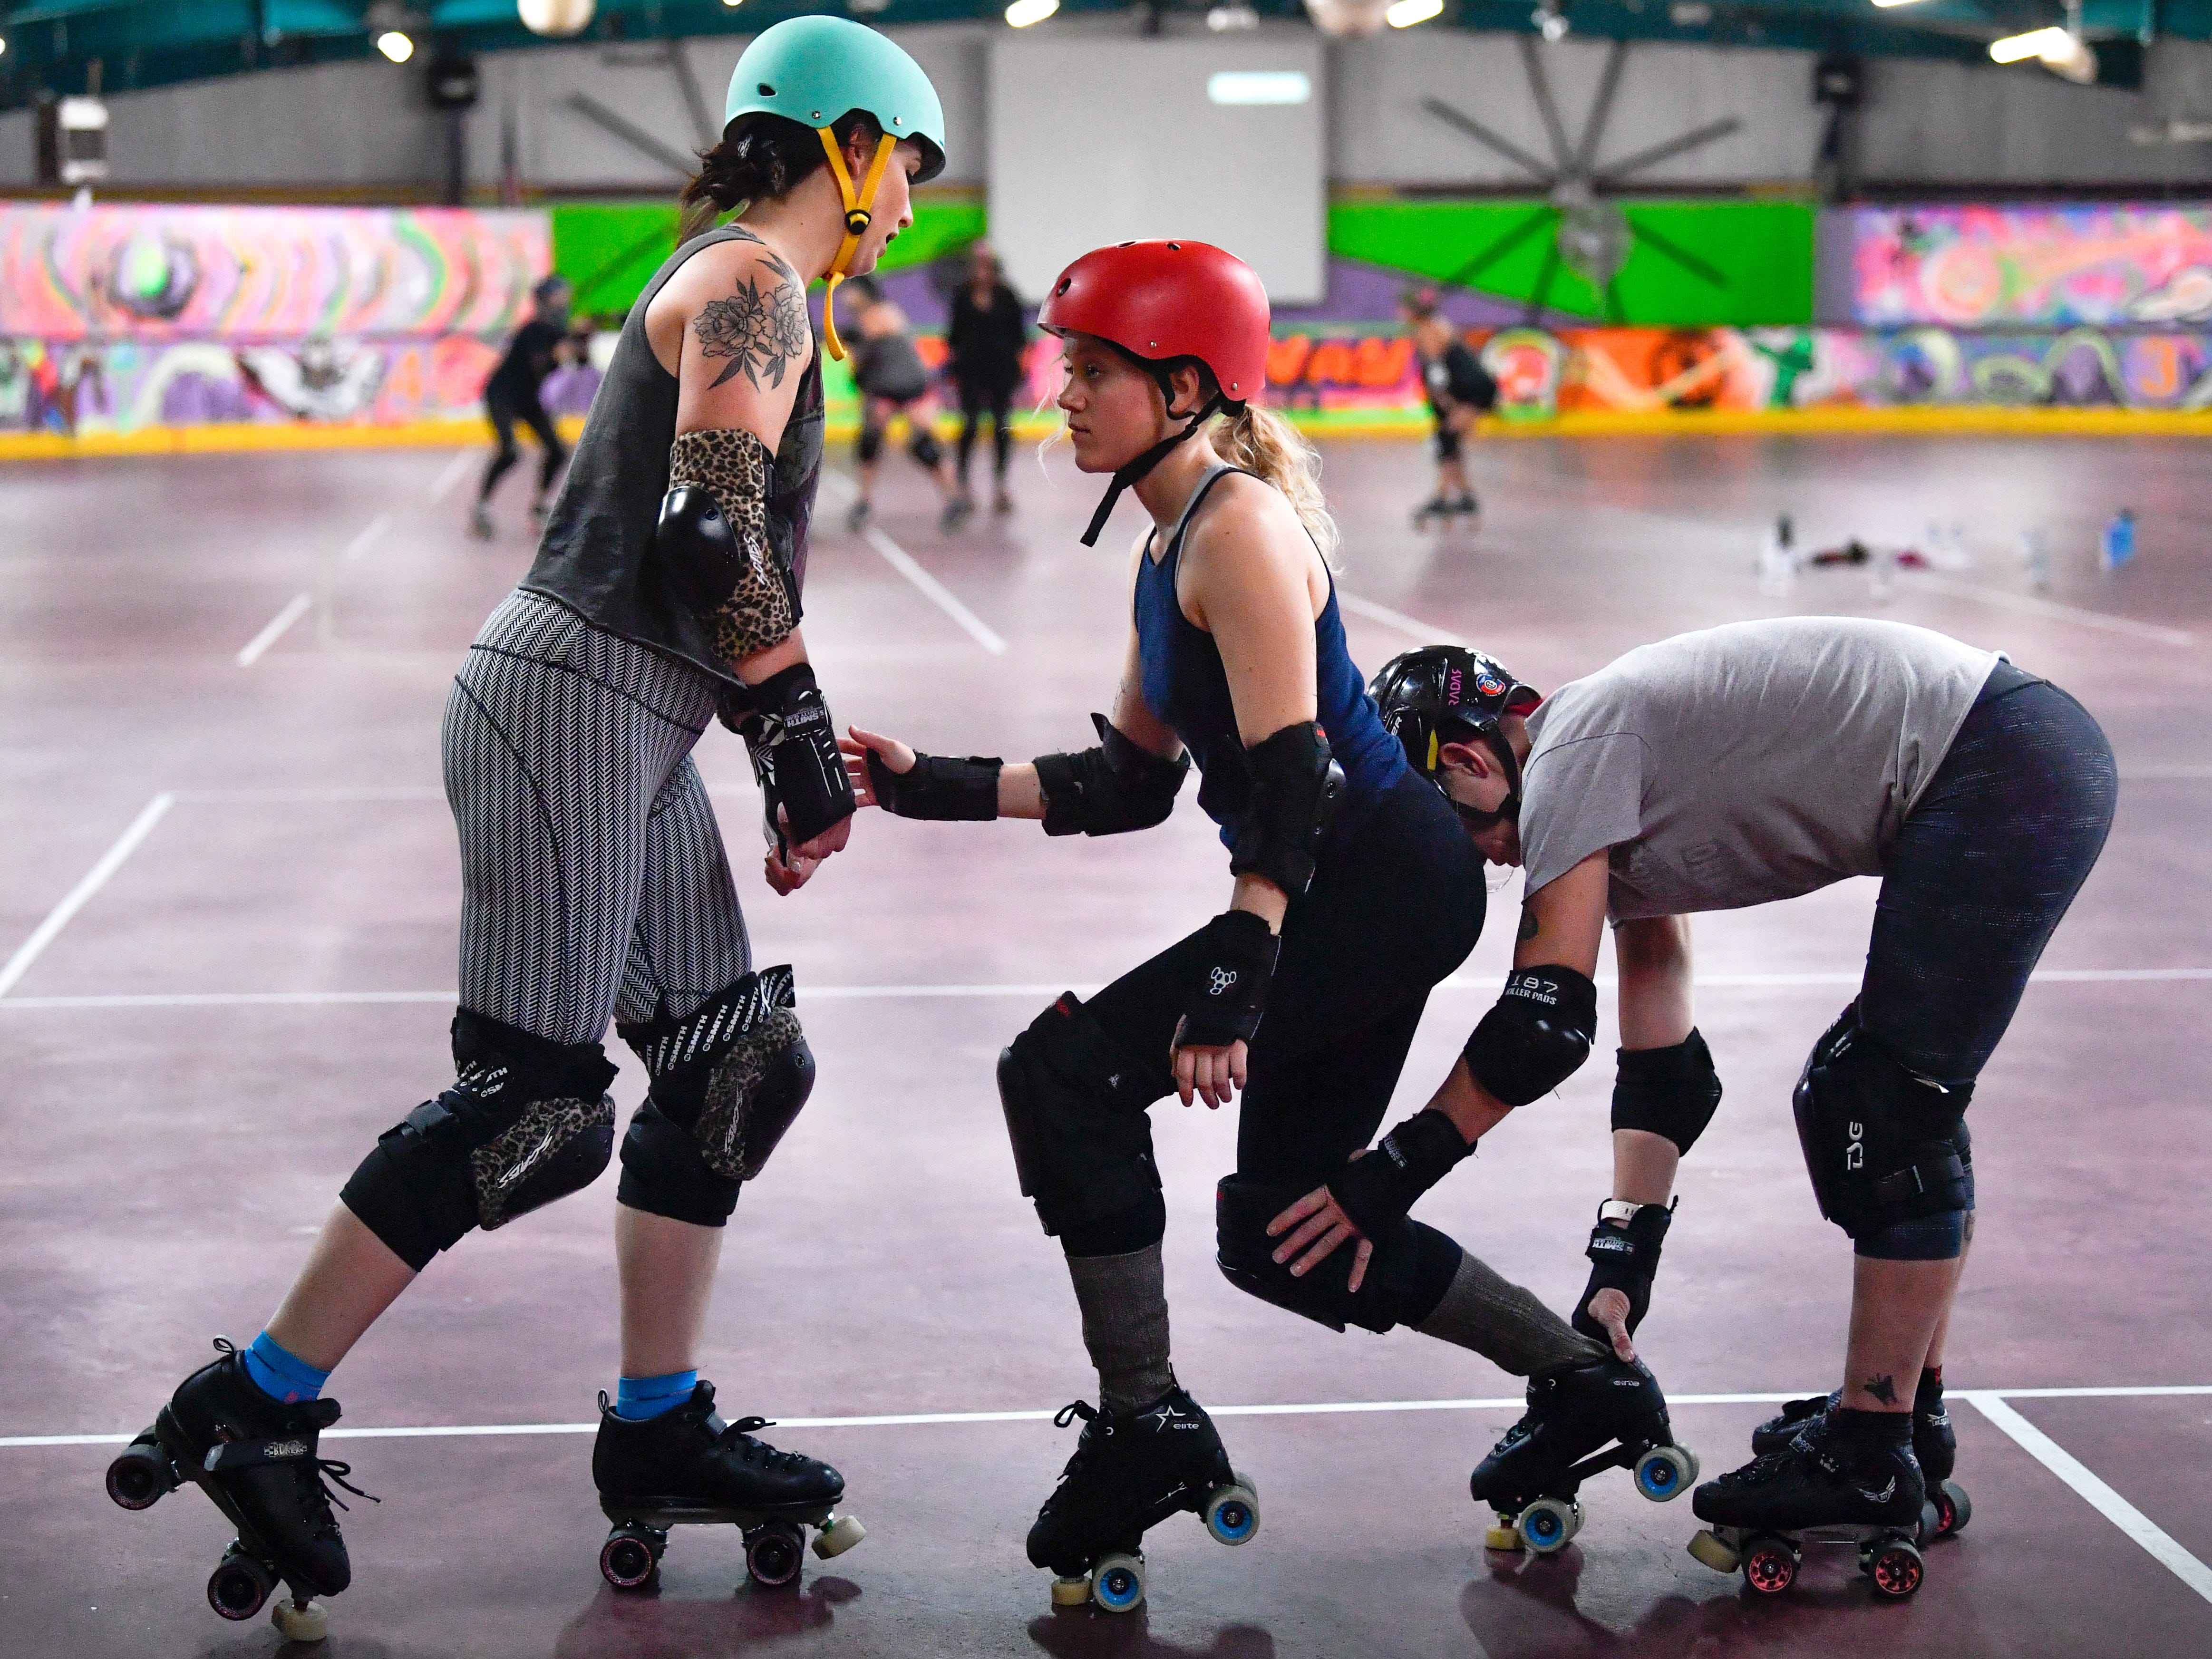 Derby Dames players work on their foot work during  practice at Roll 'R' Way, Thursday, October 18, 2018.